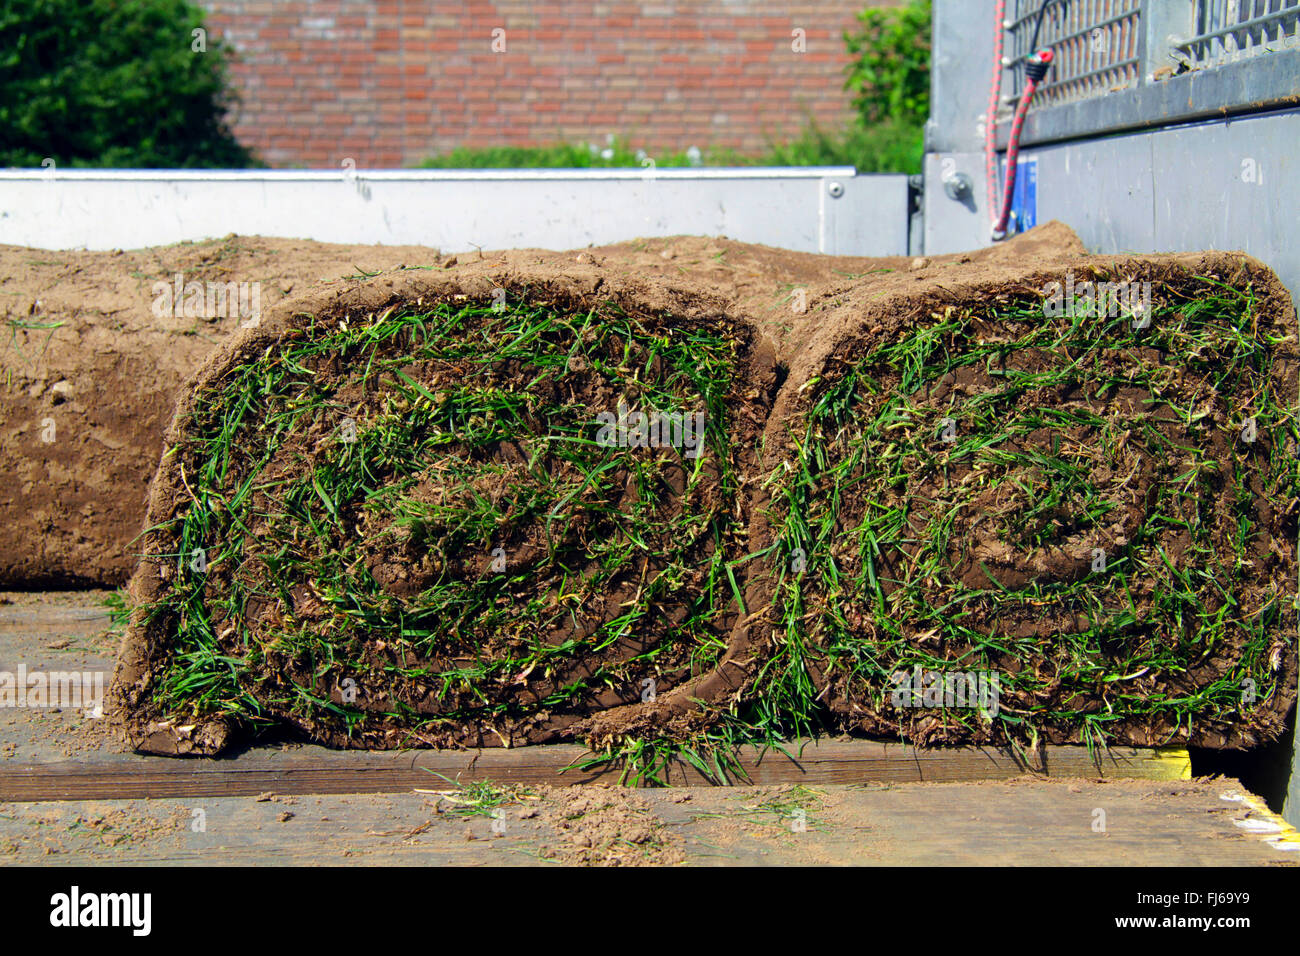 rolled sod on truck bed, Germany - Stock Image